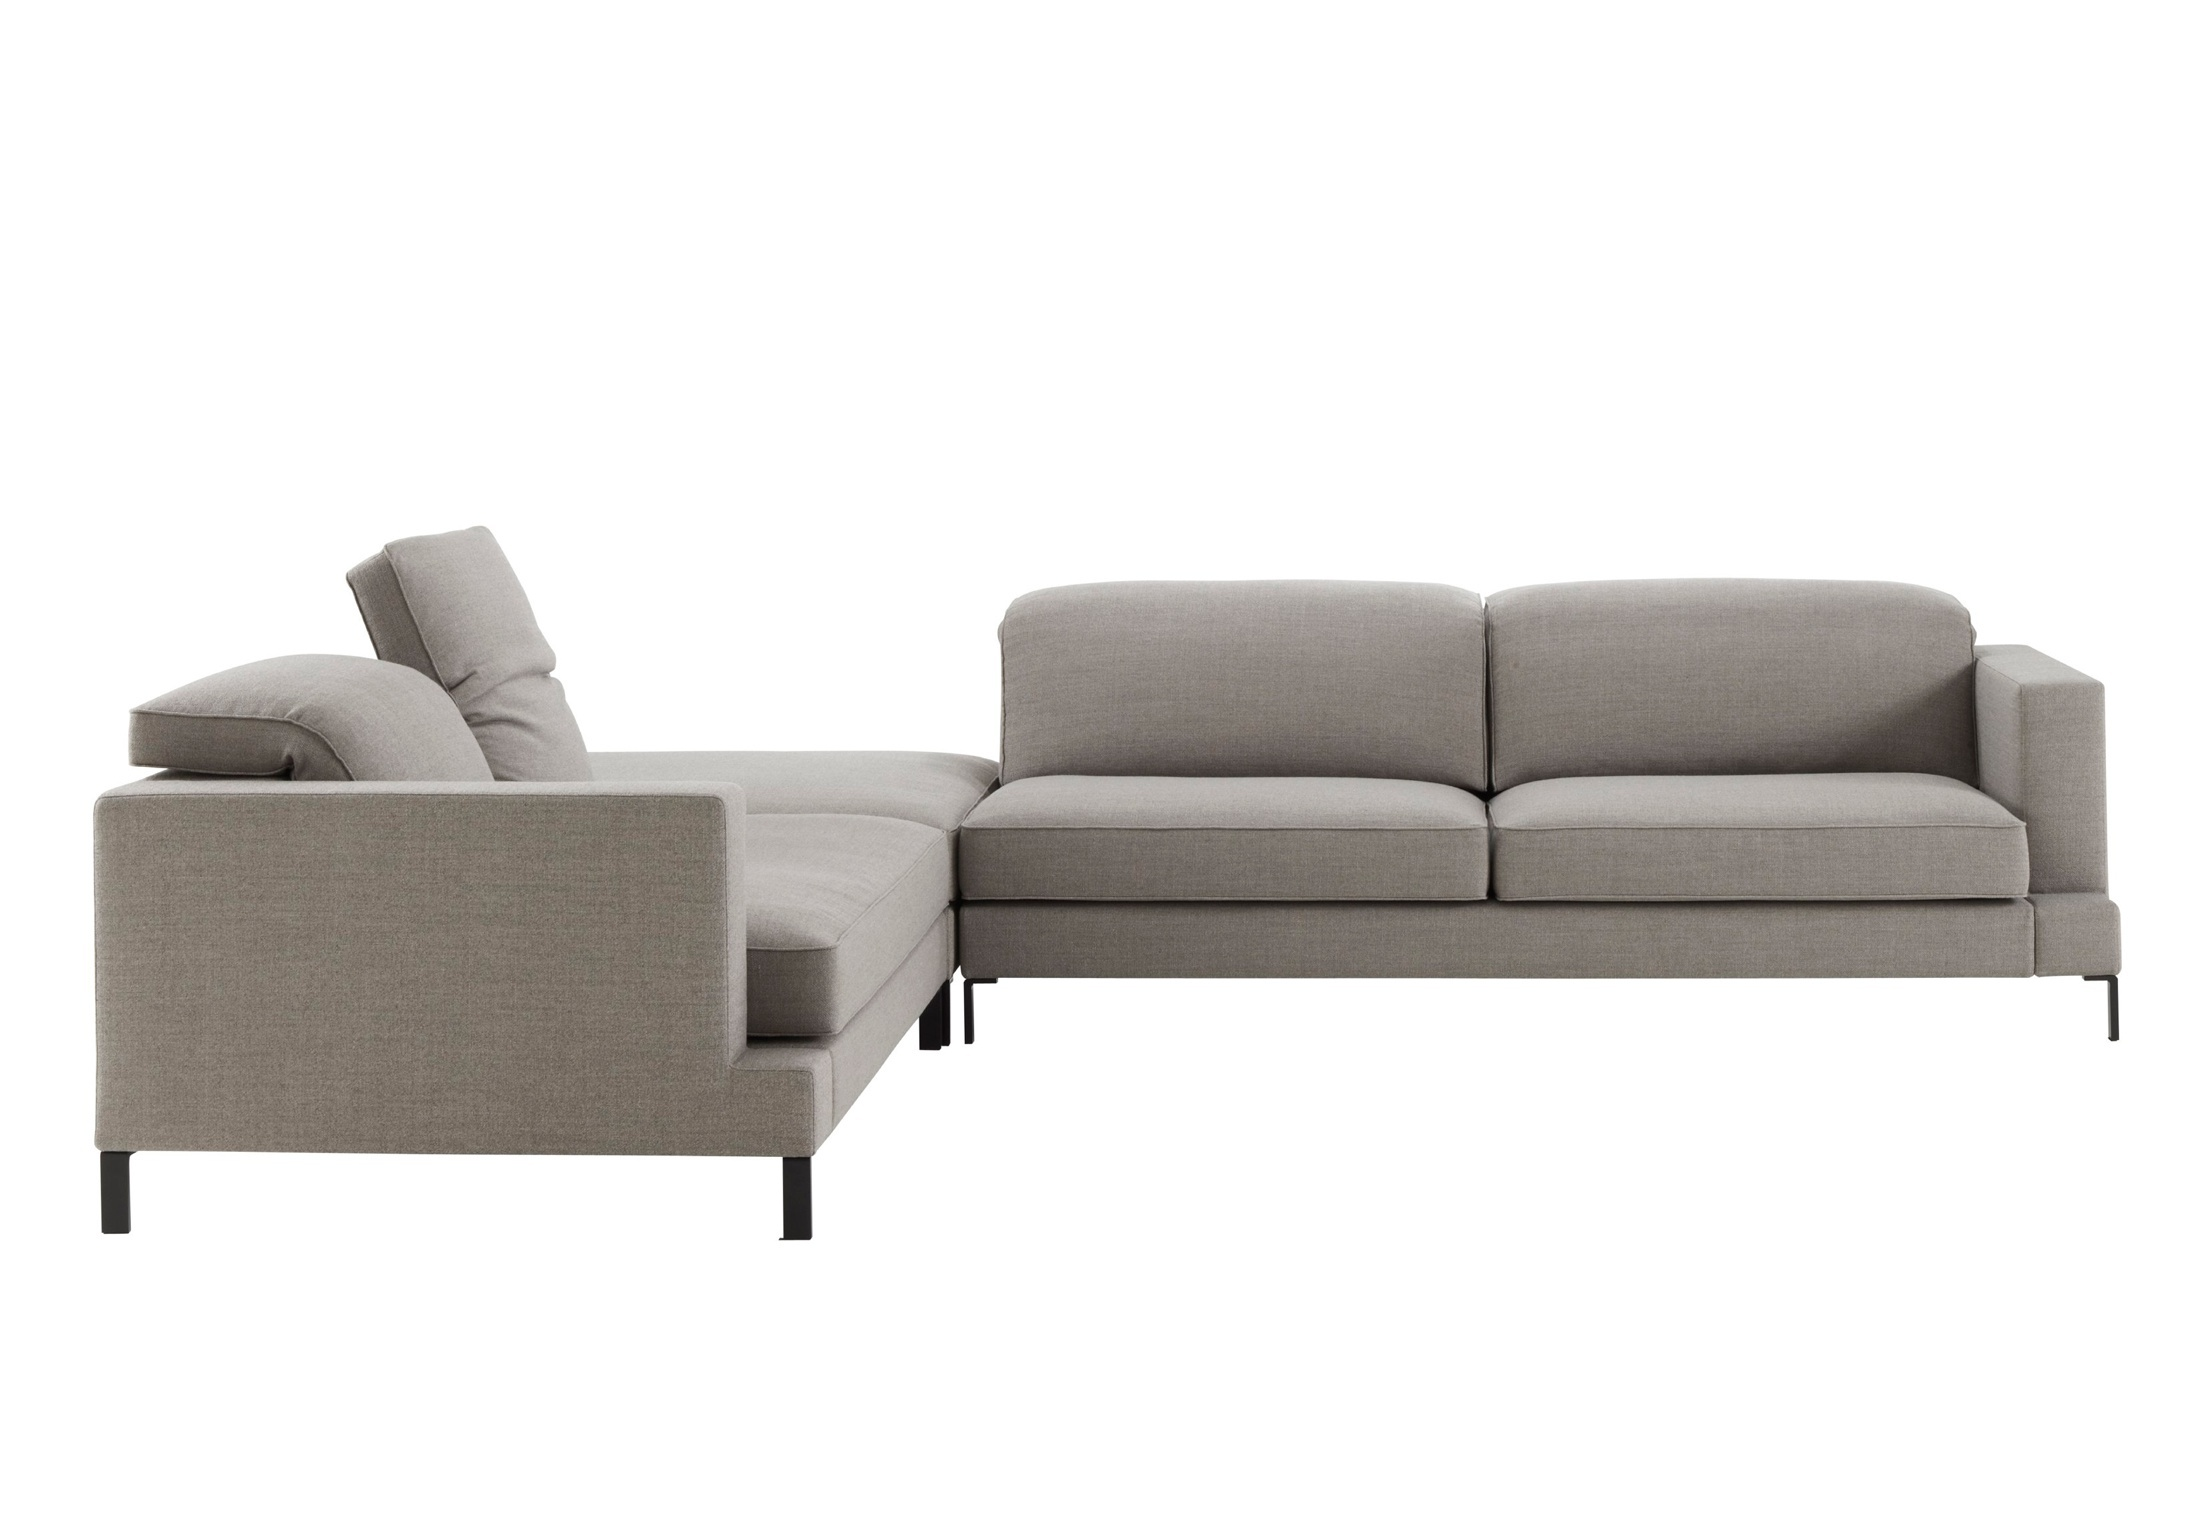 modular sofa in fabric acte 1 ligne roset luxury furniture mr. Black Bedroom Furniture Sets. Home Design Ideas